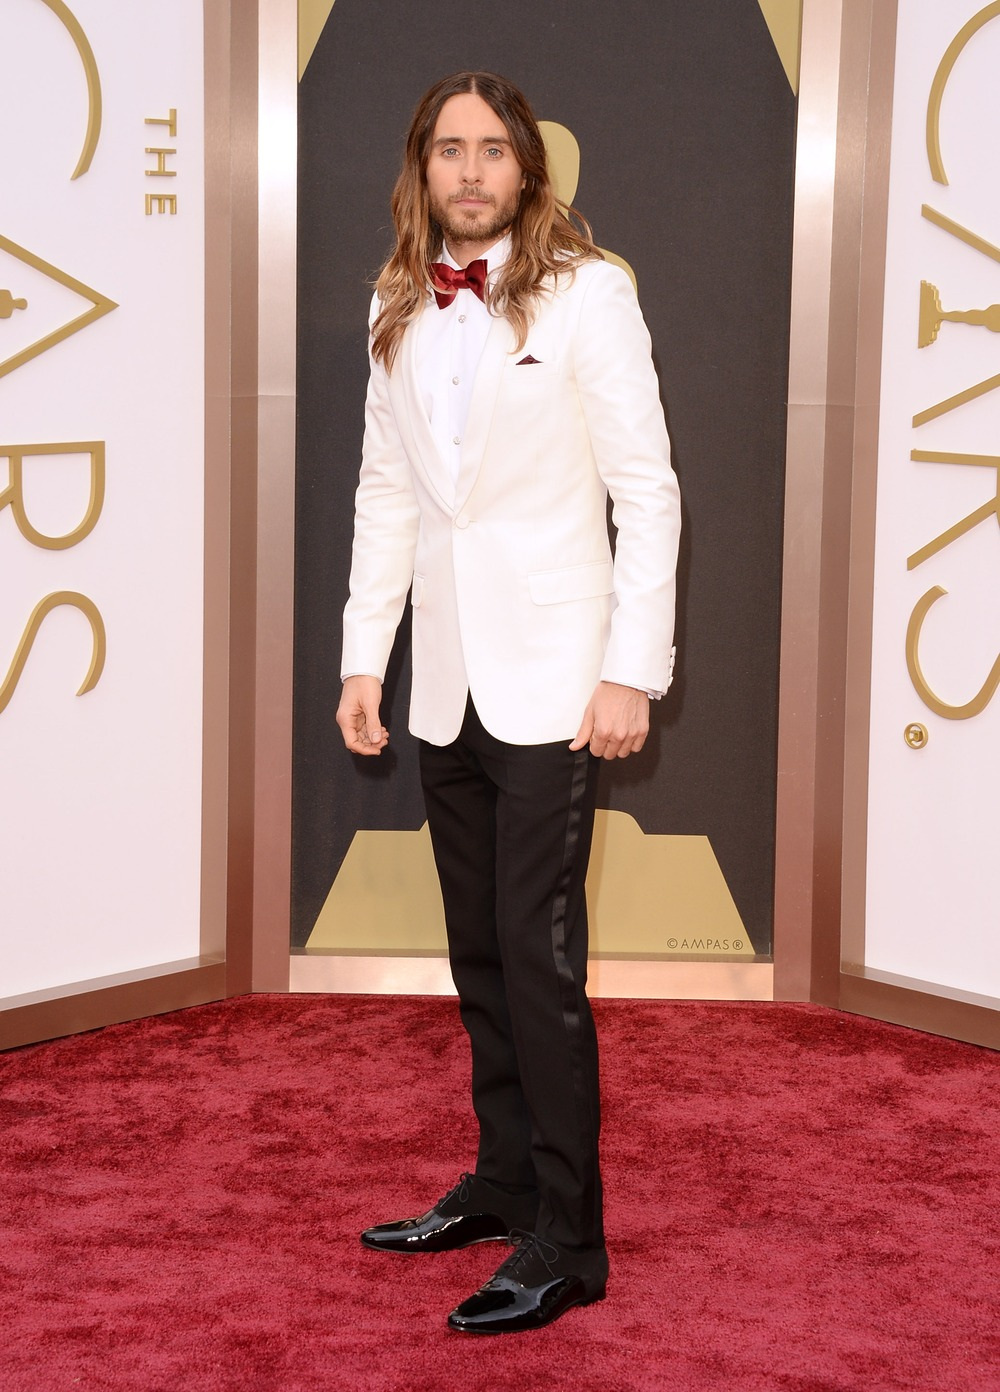 Oscars 2014: Jared Leto Gets Cozy on the Red Carpet With WHO? (VIDEO)